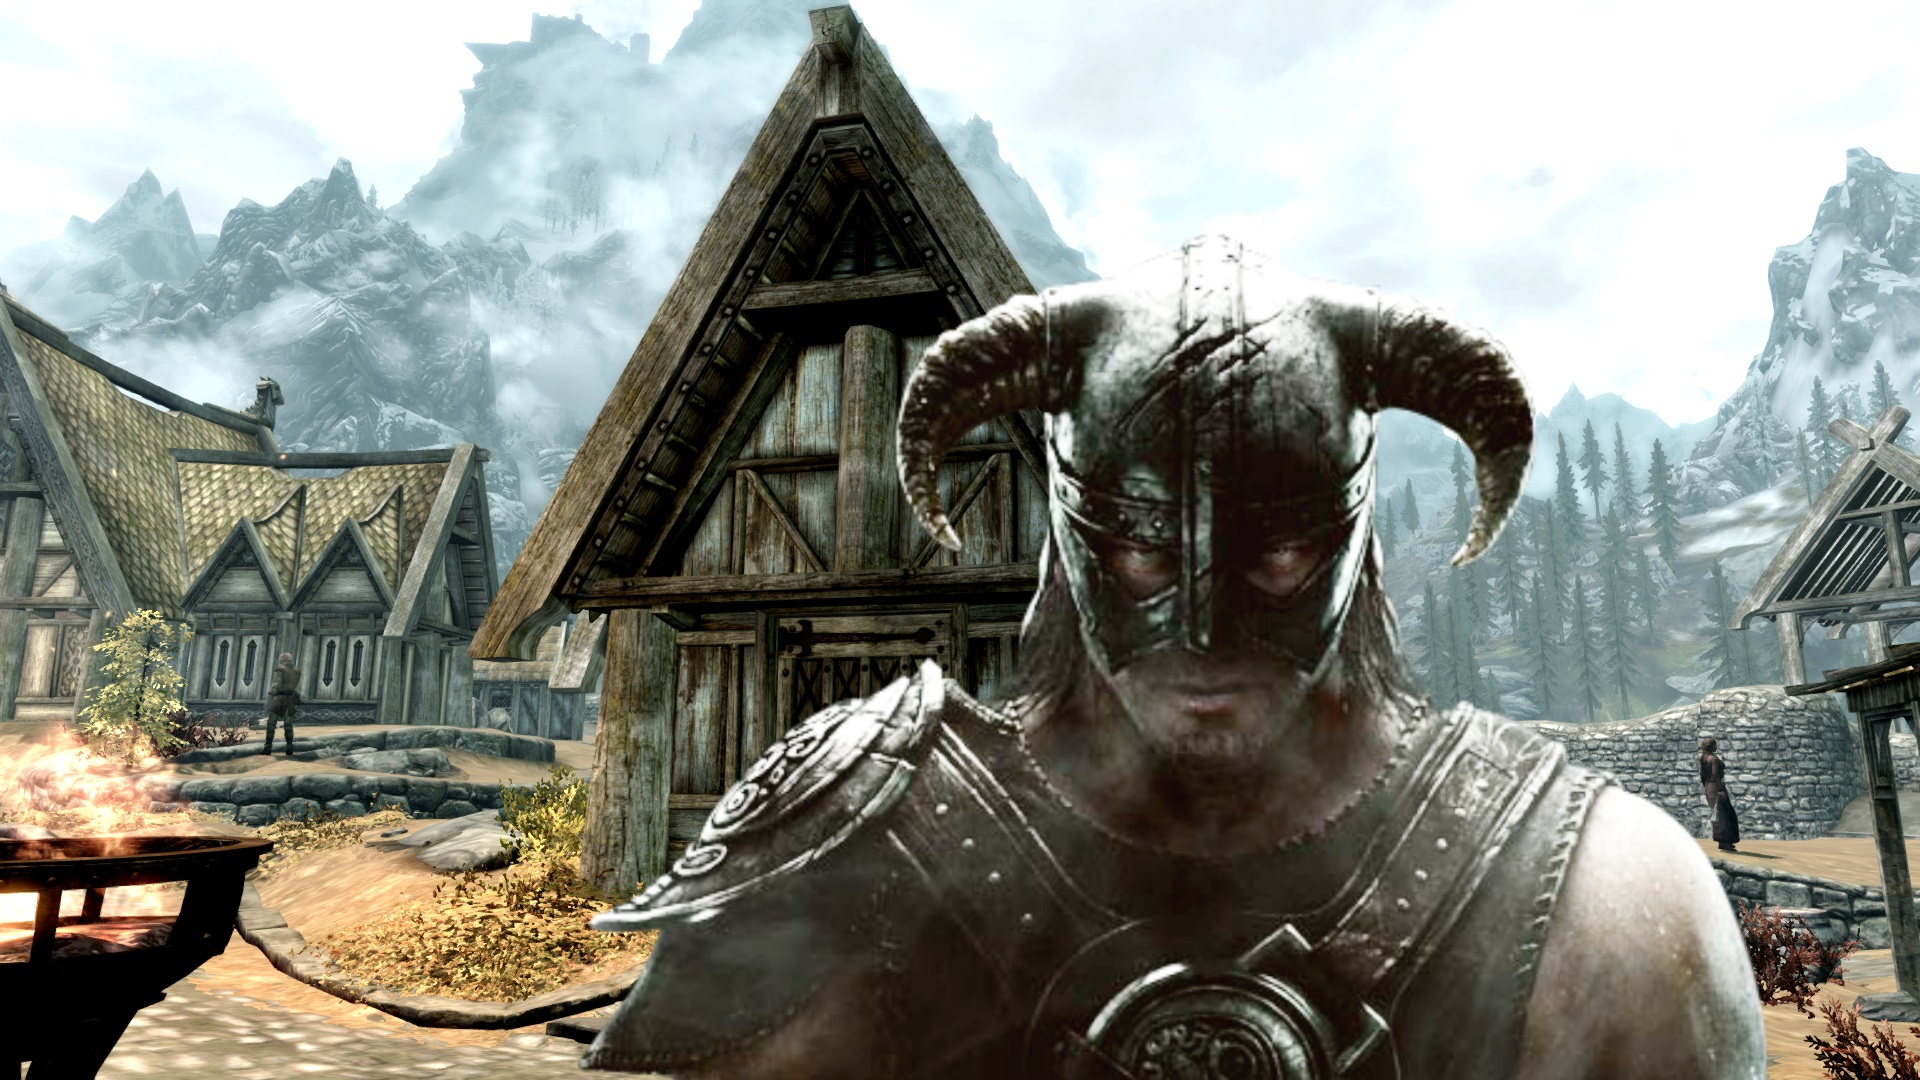 Want to buy a house in Skyrim with real-world money? Here's what it